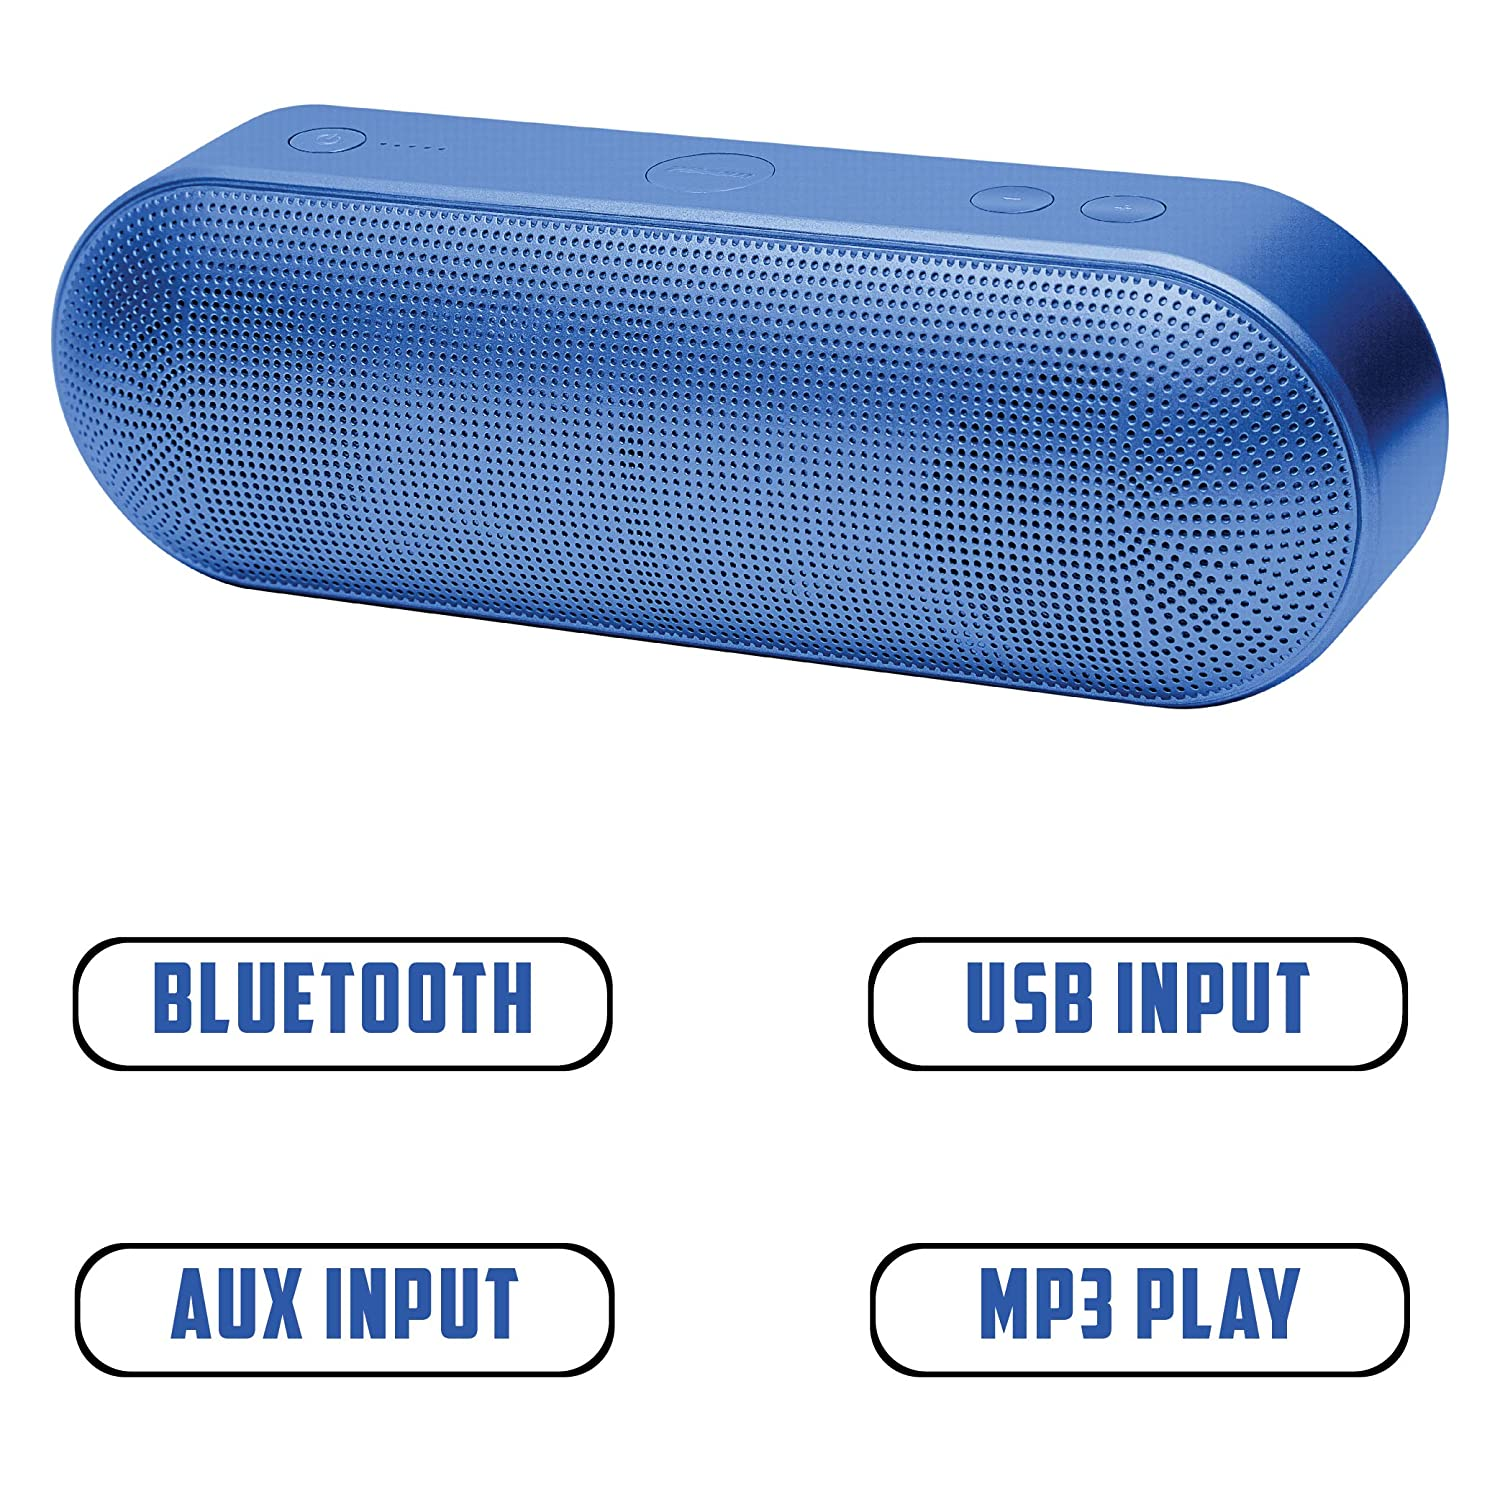 2BOOM Wireless Bluetooth Pill Speaker BT422, Portable, Built-in Microphone, Lightweight, Aux-in, FM Radio, USB Input, Loud Sound, Rich Bass - Electric ...